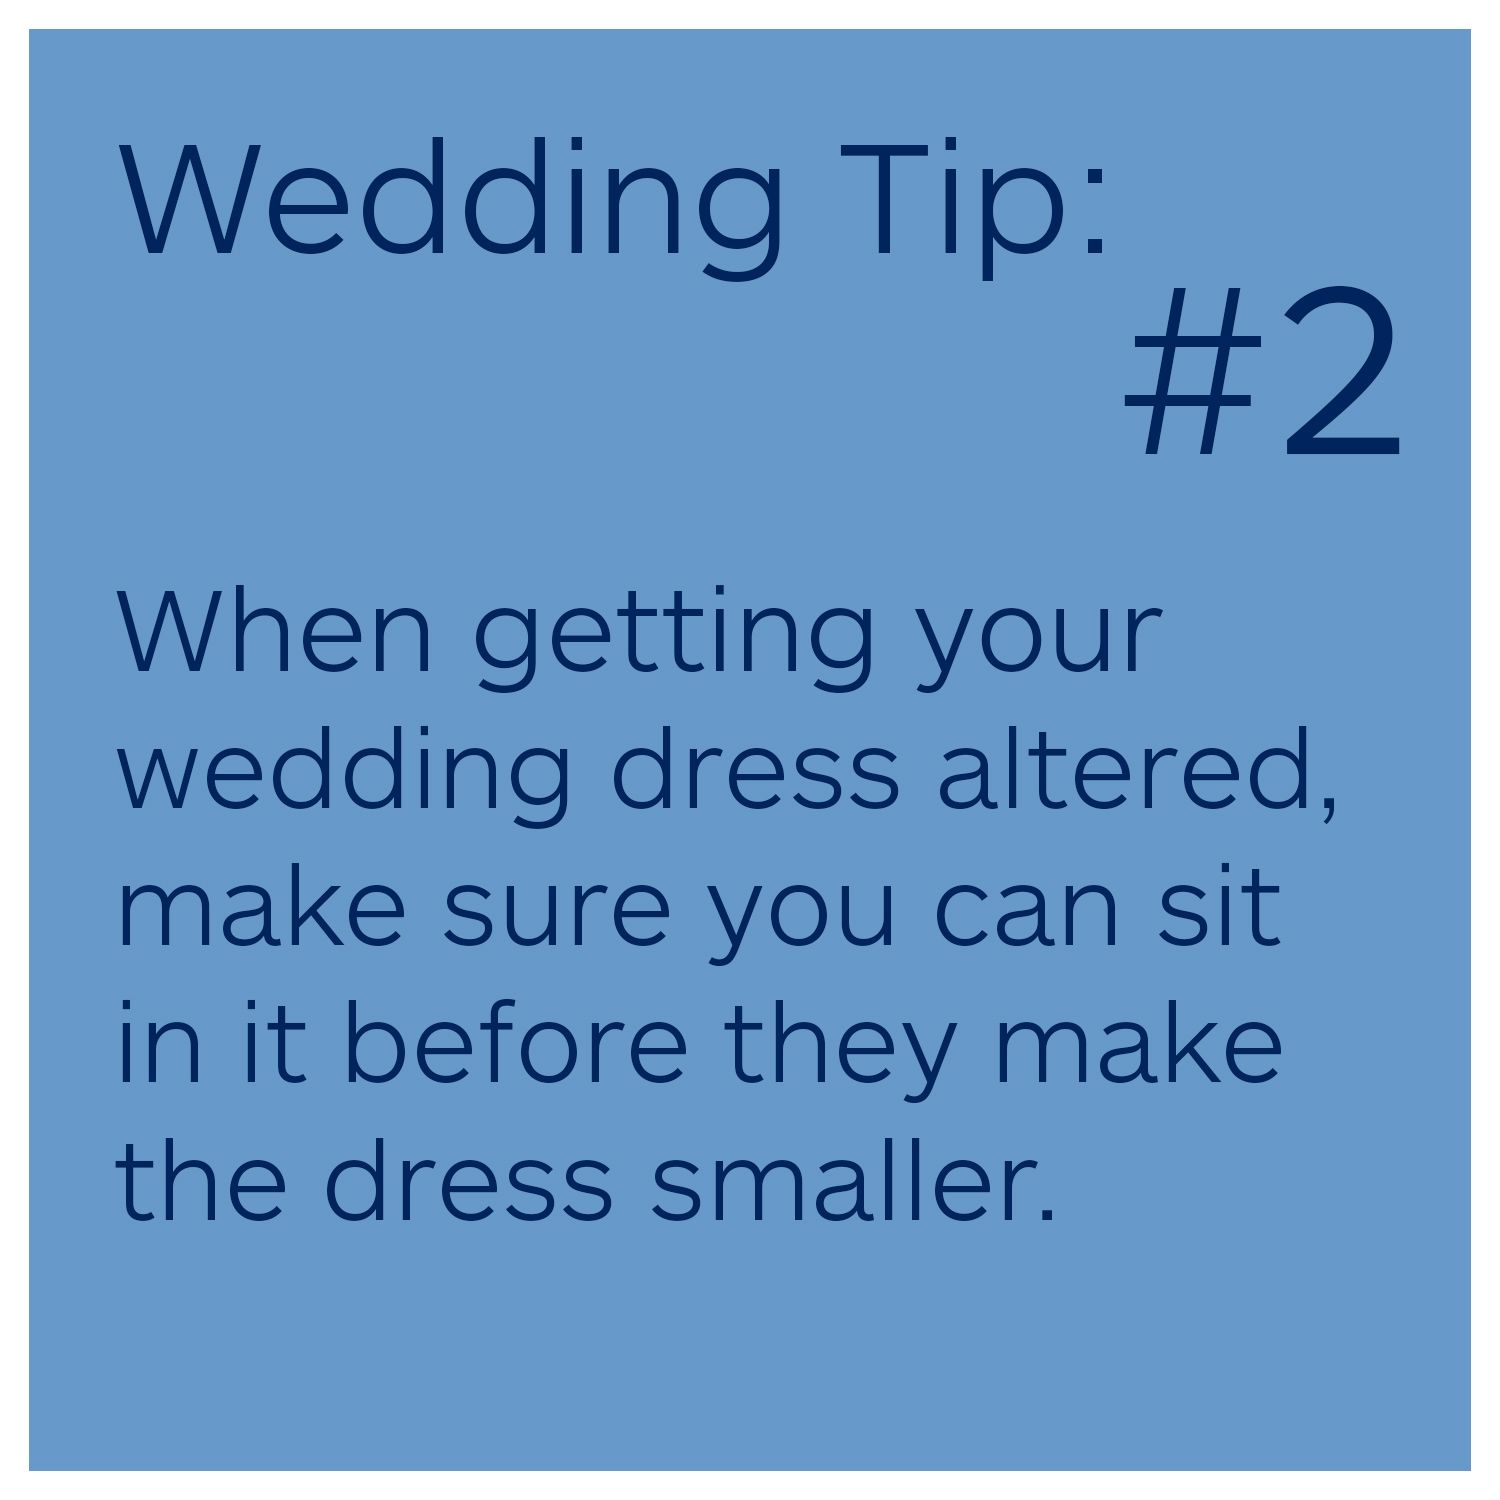 7 Tips For Planning A Small Courthouse Wedding: I ALWAYS SAY THIS! So Many Girls Forget This Important